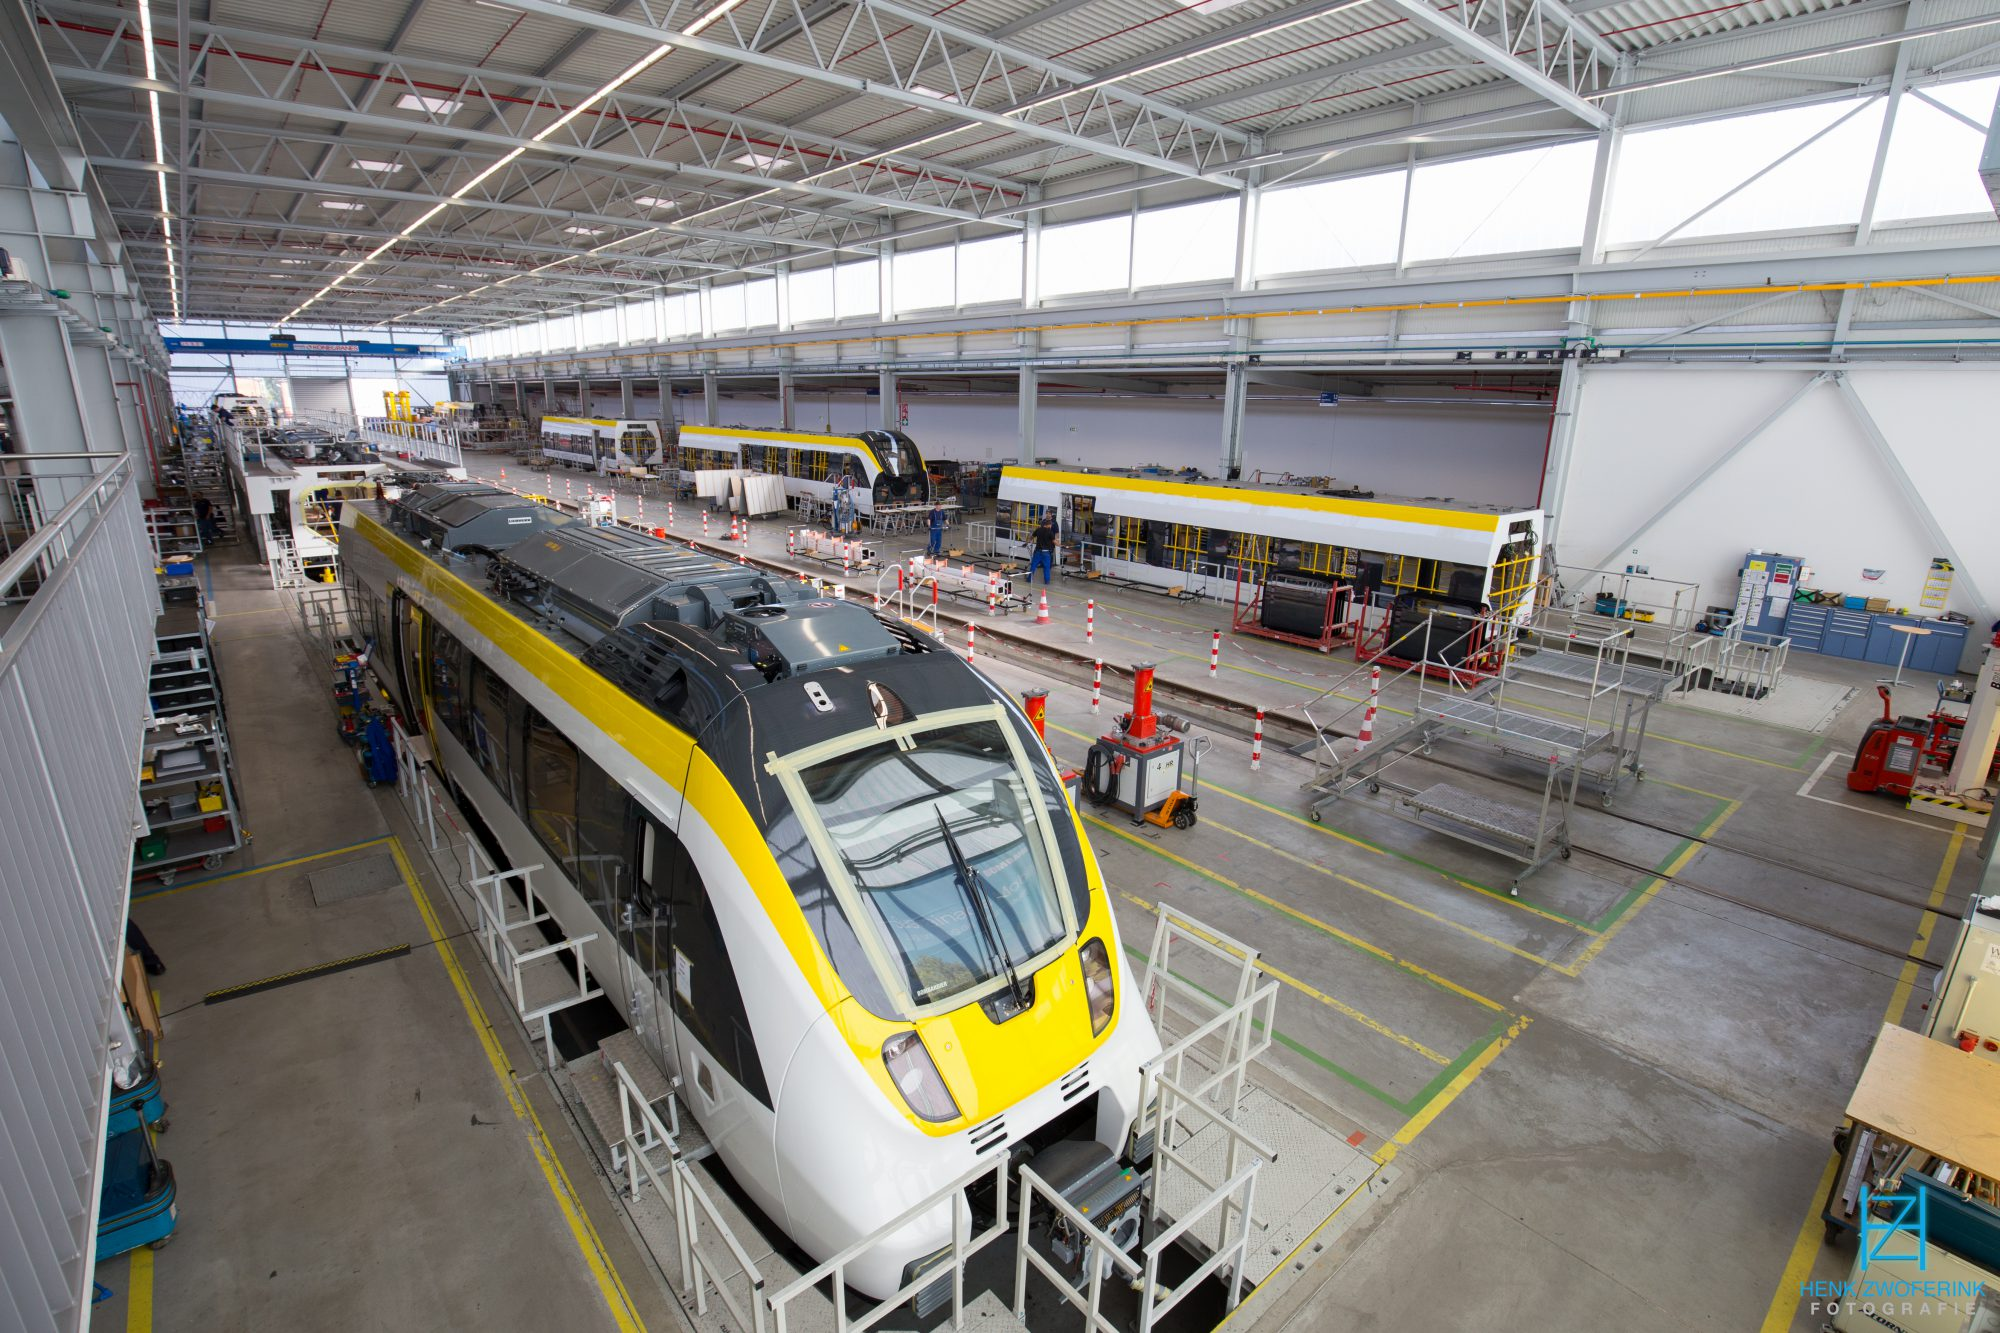 Bombardier @ Hennigsdorf: Building Talent2 trains for DB Regio, to be used at the Gäu-Murr network - Henk Zwoferink